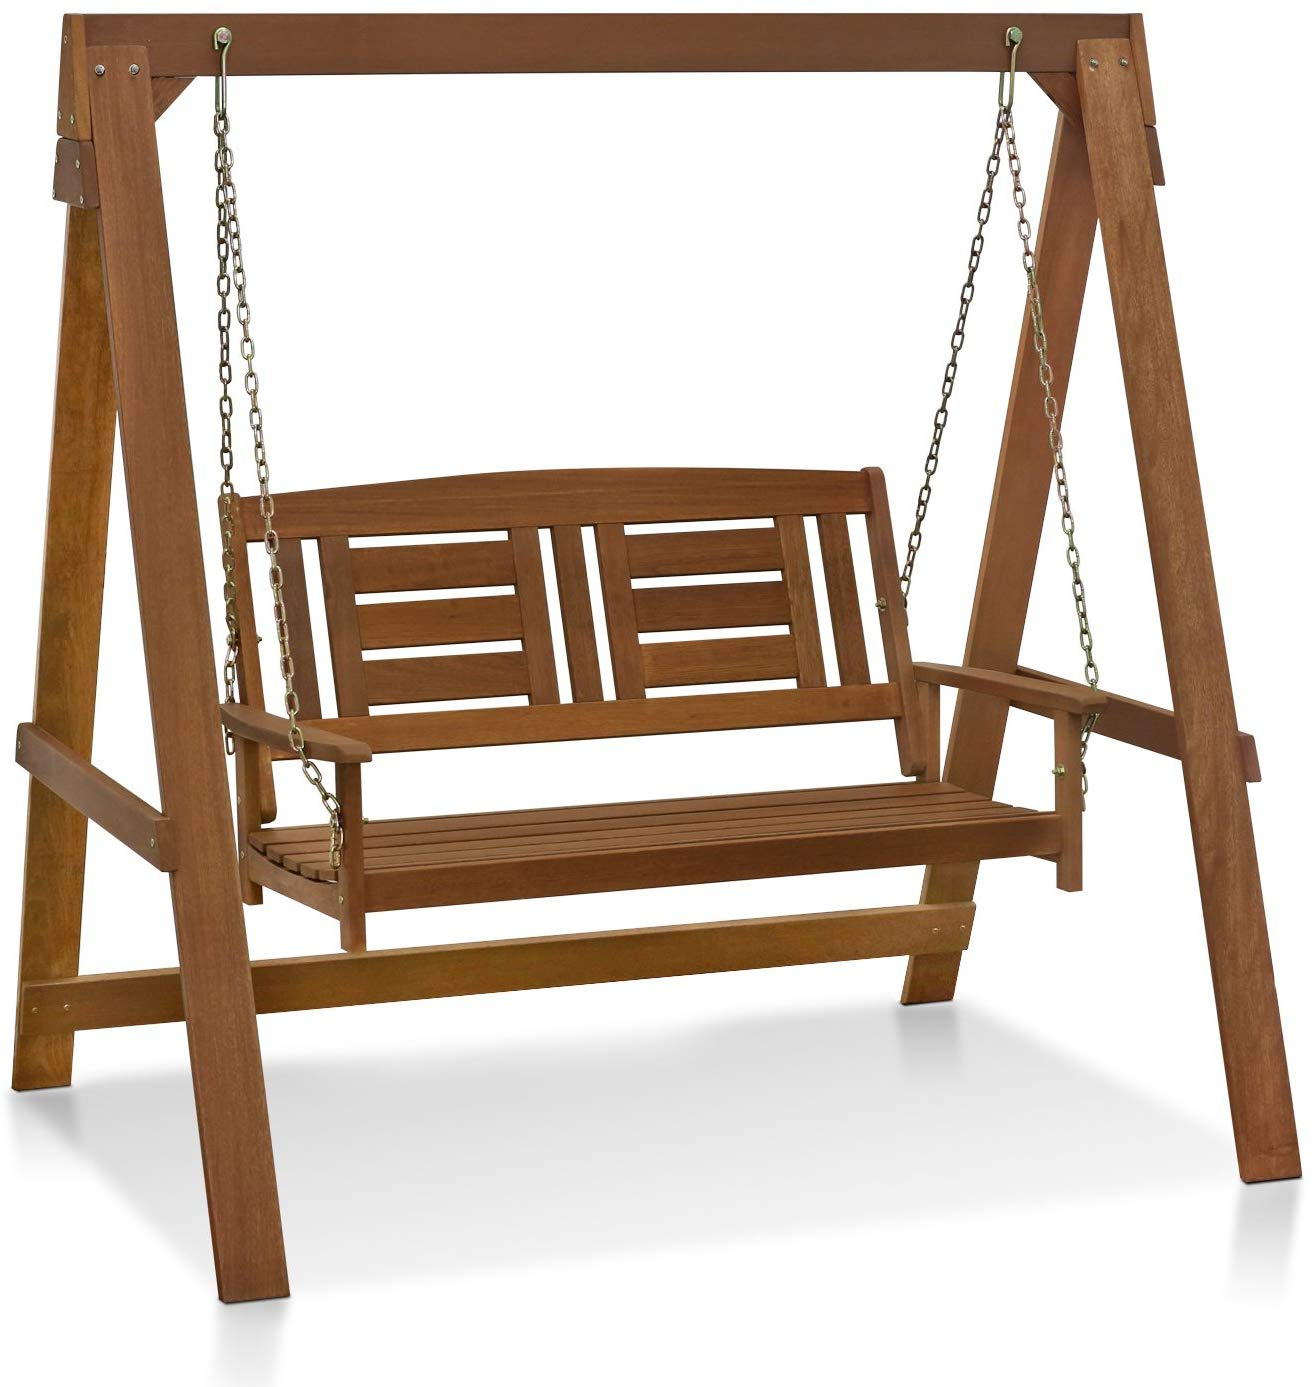 Favorite Porch Swings With Stand With Regard To Furinno Fg16409 Tioman Hardwood Patio Furniture Porch Swing With Stand In  Teak Oil, 2 Seater With Frame, Natural (Gallery 16 of 30)